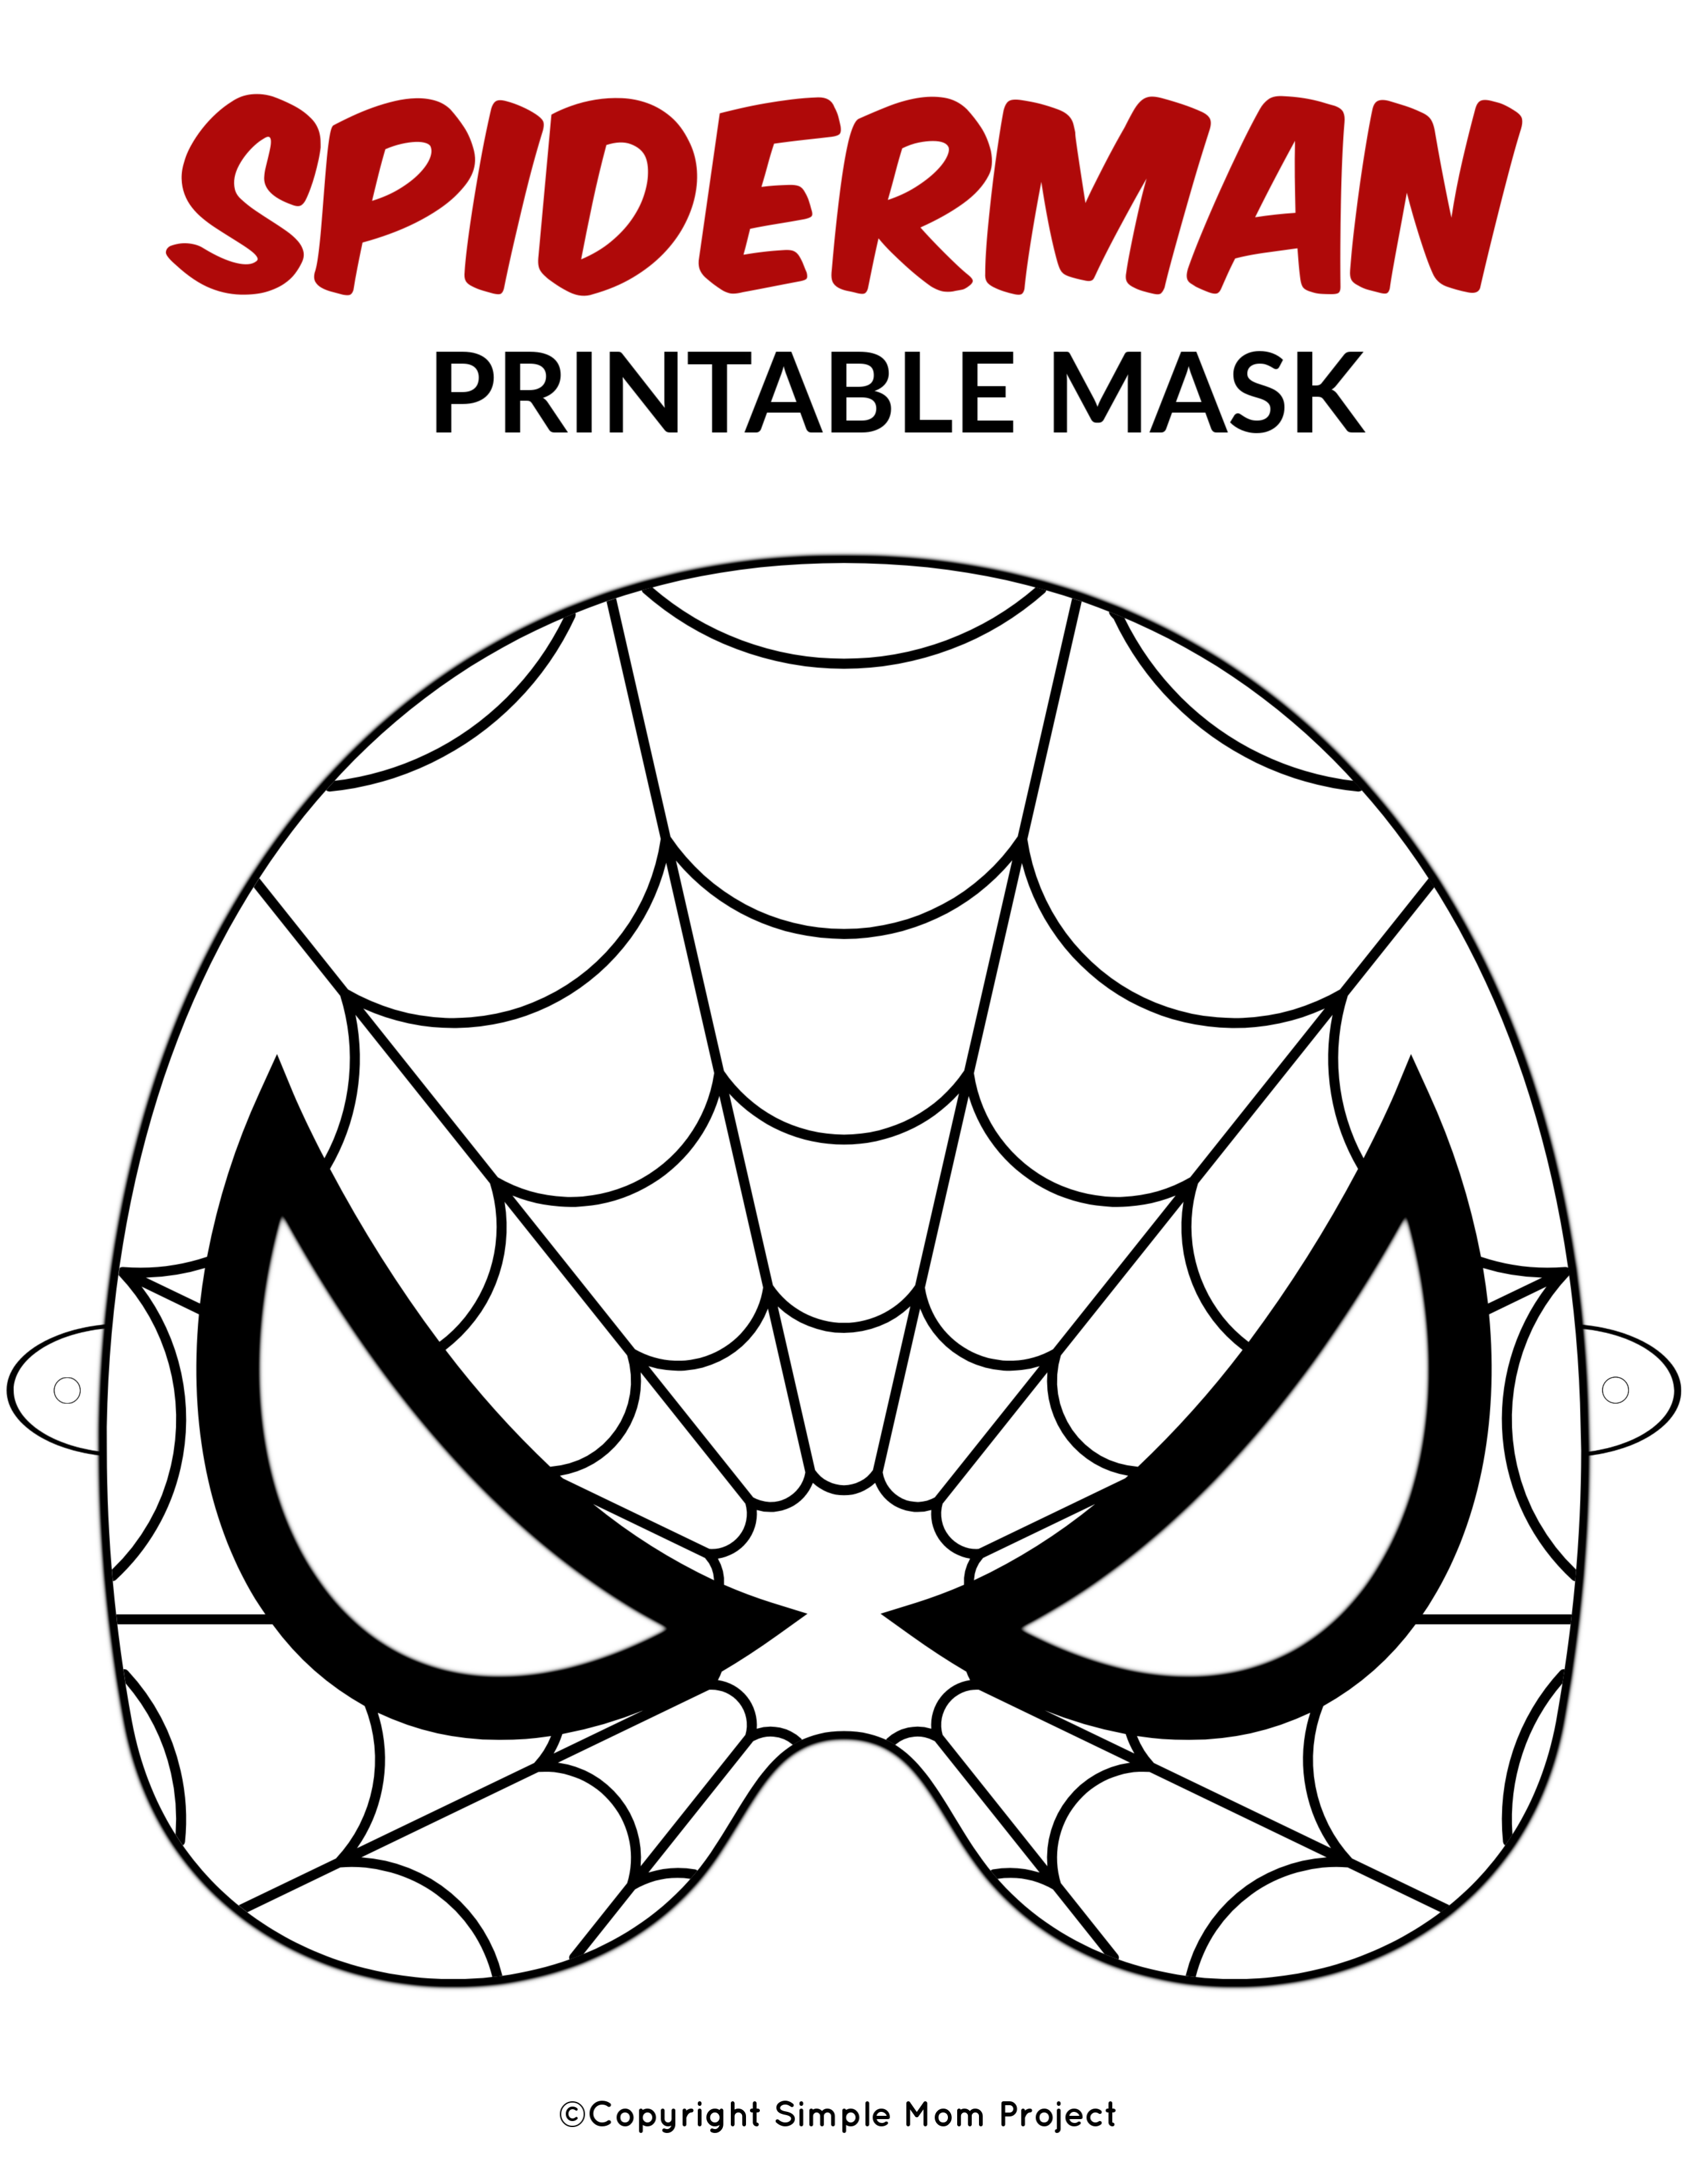 It's just a picture of Adaptable Spiderman Mask Printable